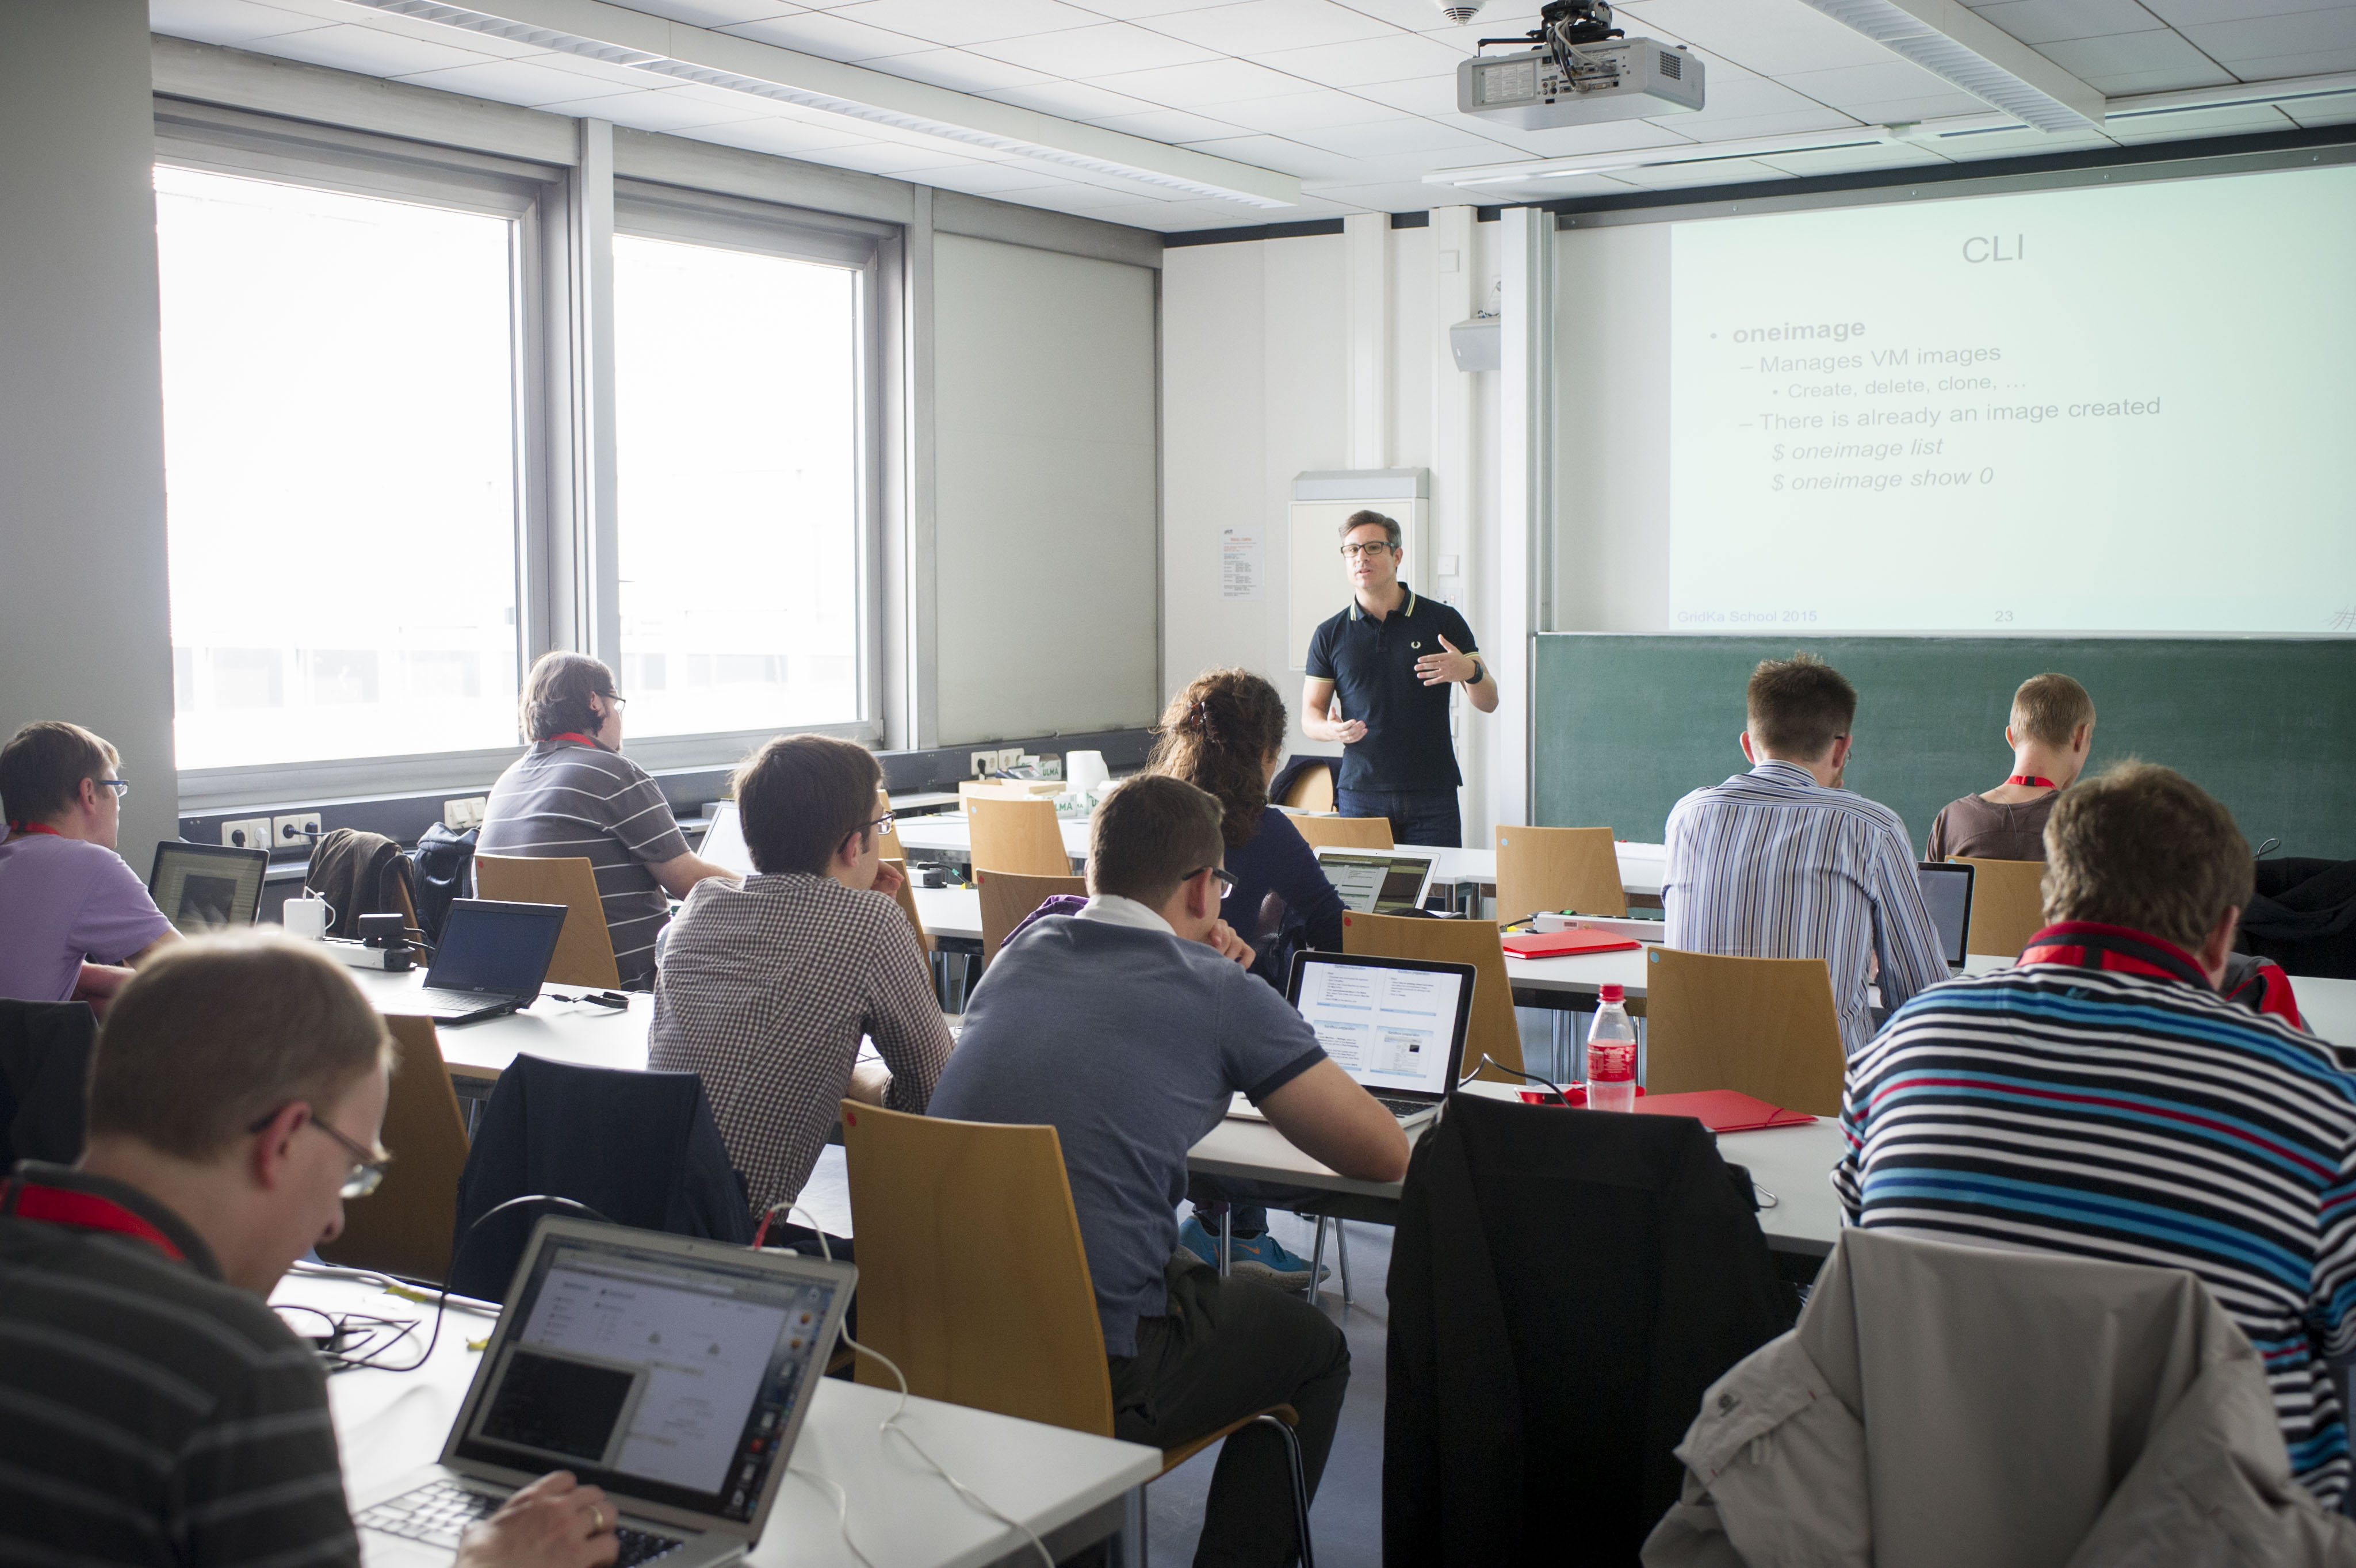 HPCCloud 101 with Jose Luis Vazquez-Poletti (photo by Tanja Meissner, KIT)